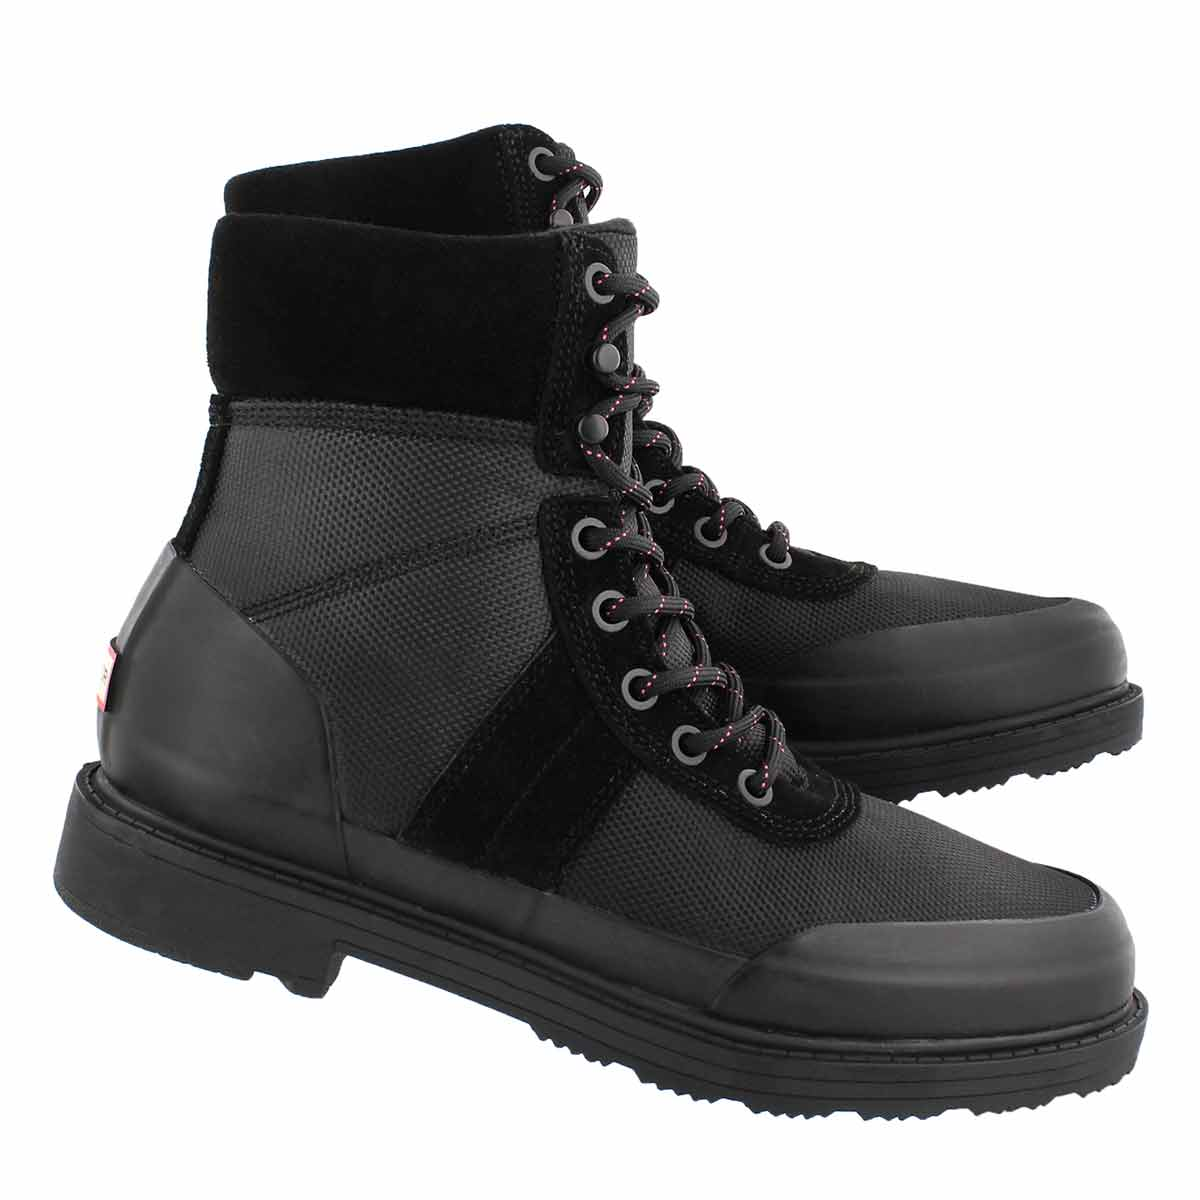 Lds Org Insulated Commando blk wtpf boot